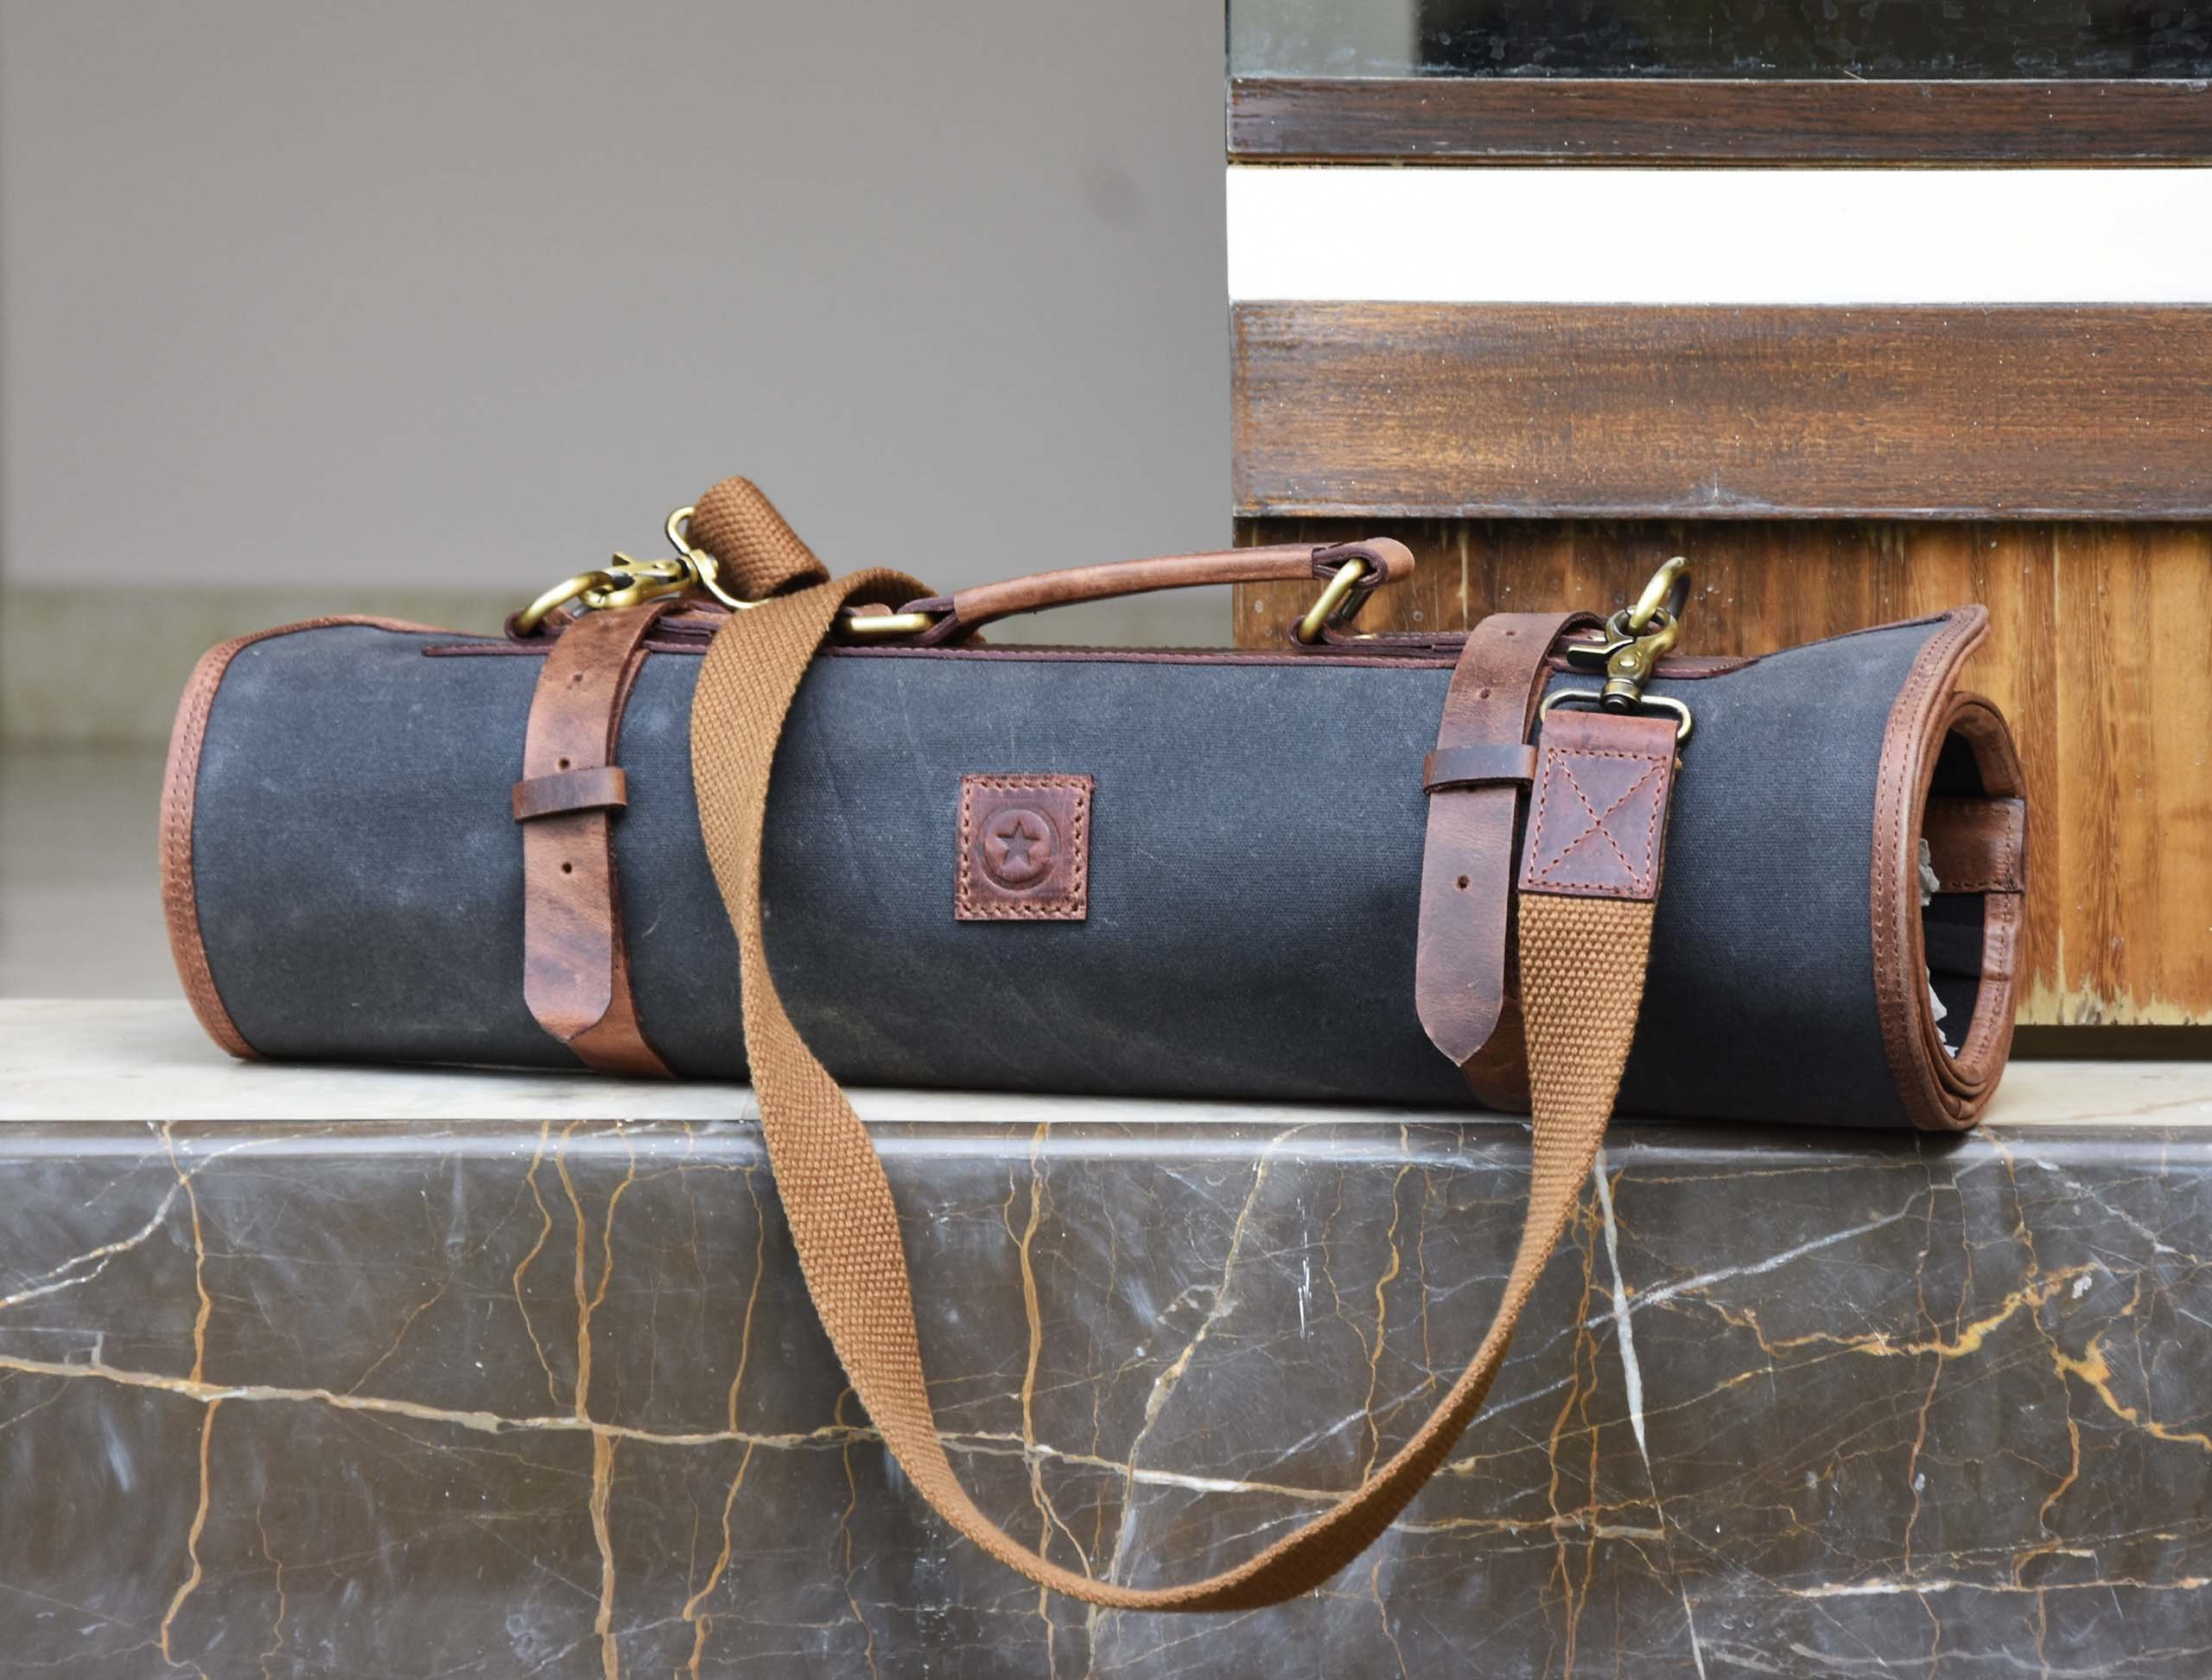 Leather Knife Roll Chef Roll Storage Bag Aaron Leather (Fossil Grey) by Aaron Leather (Image #7)